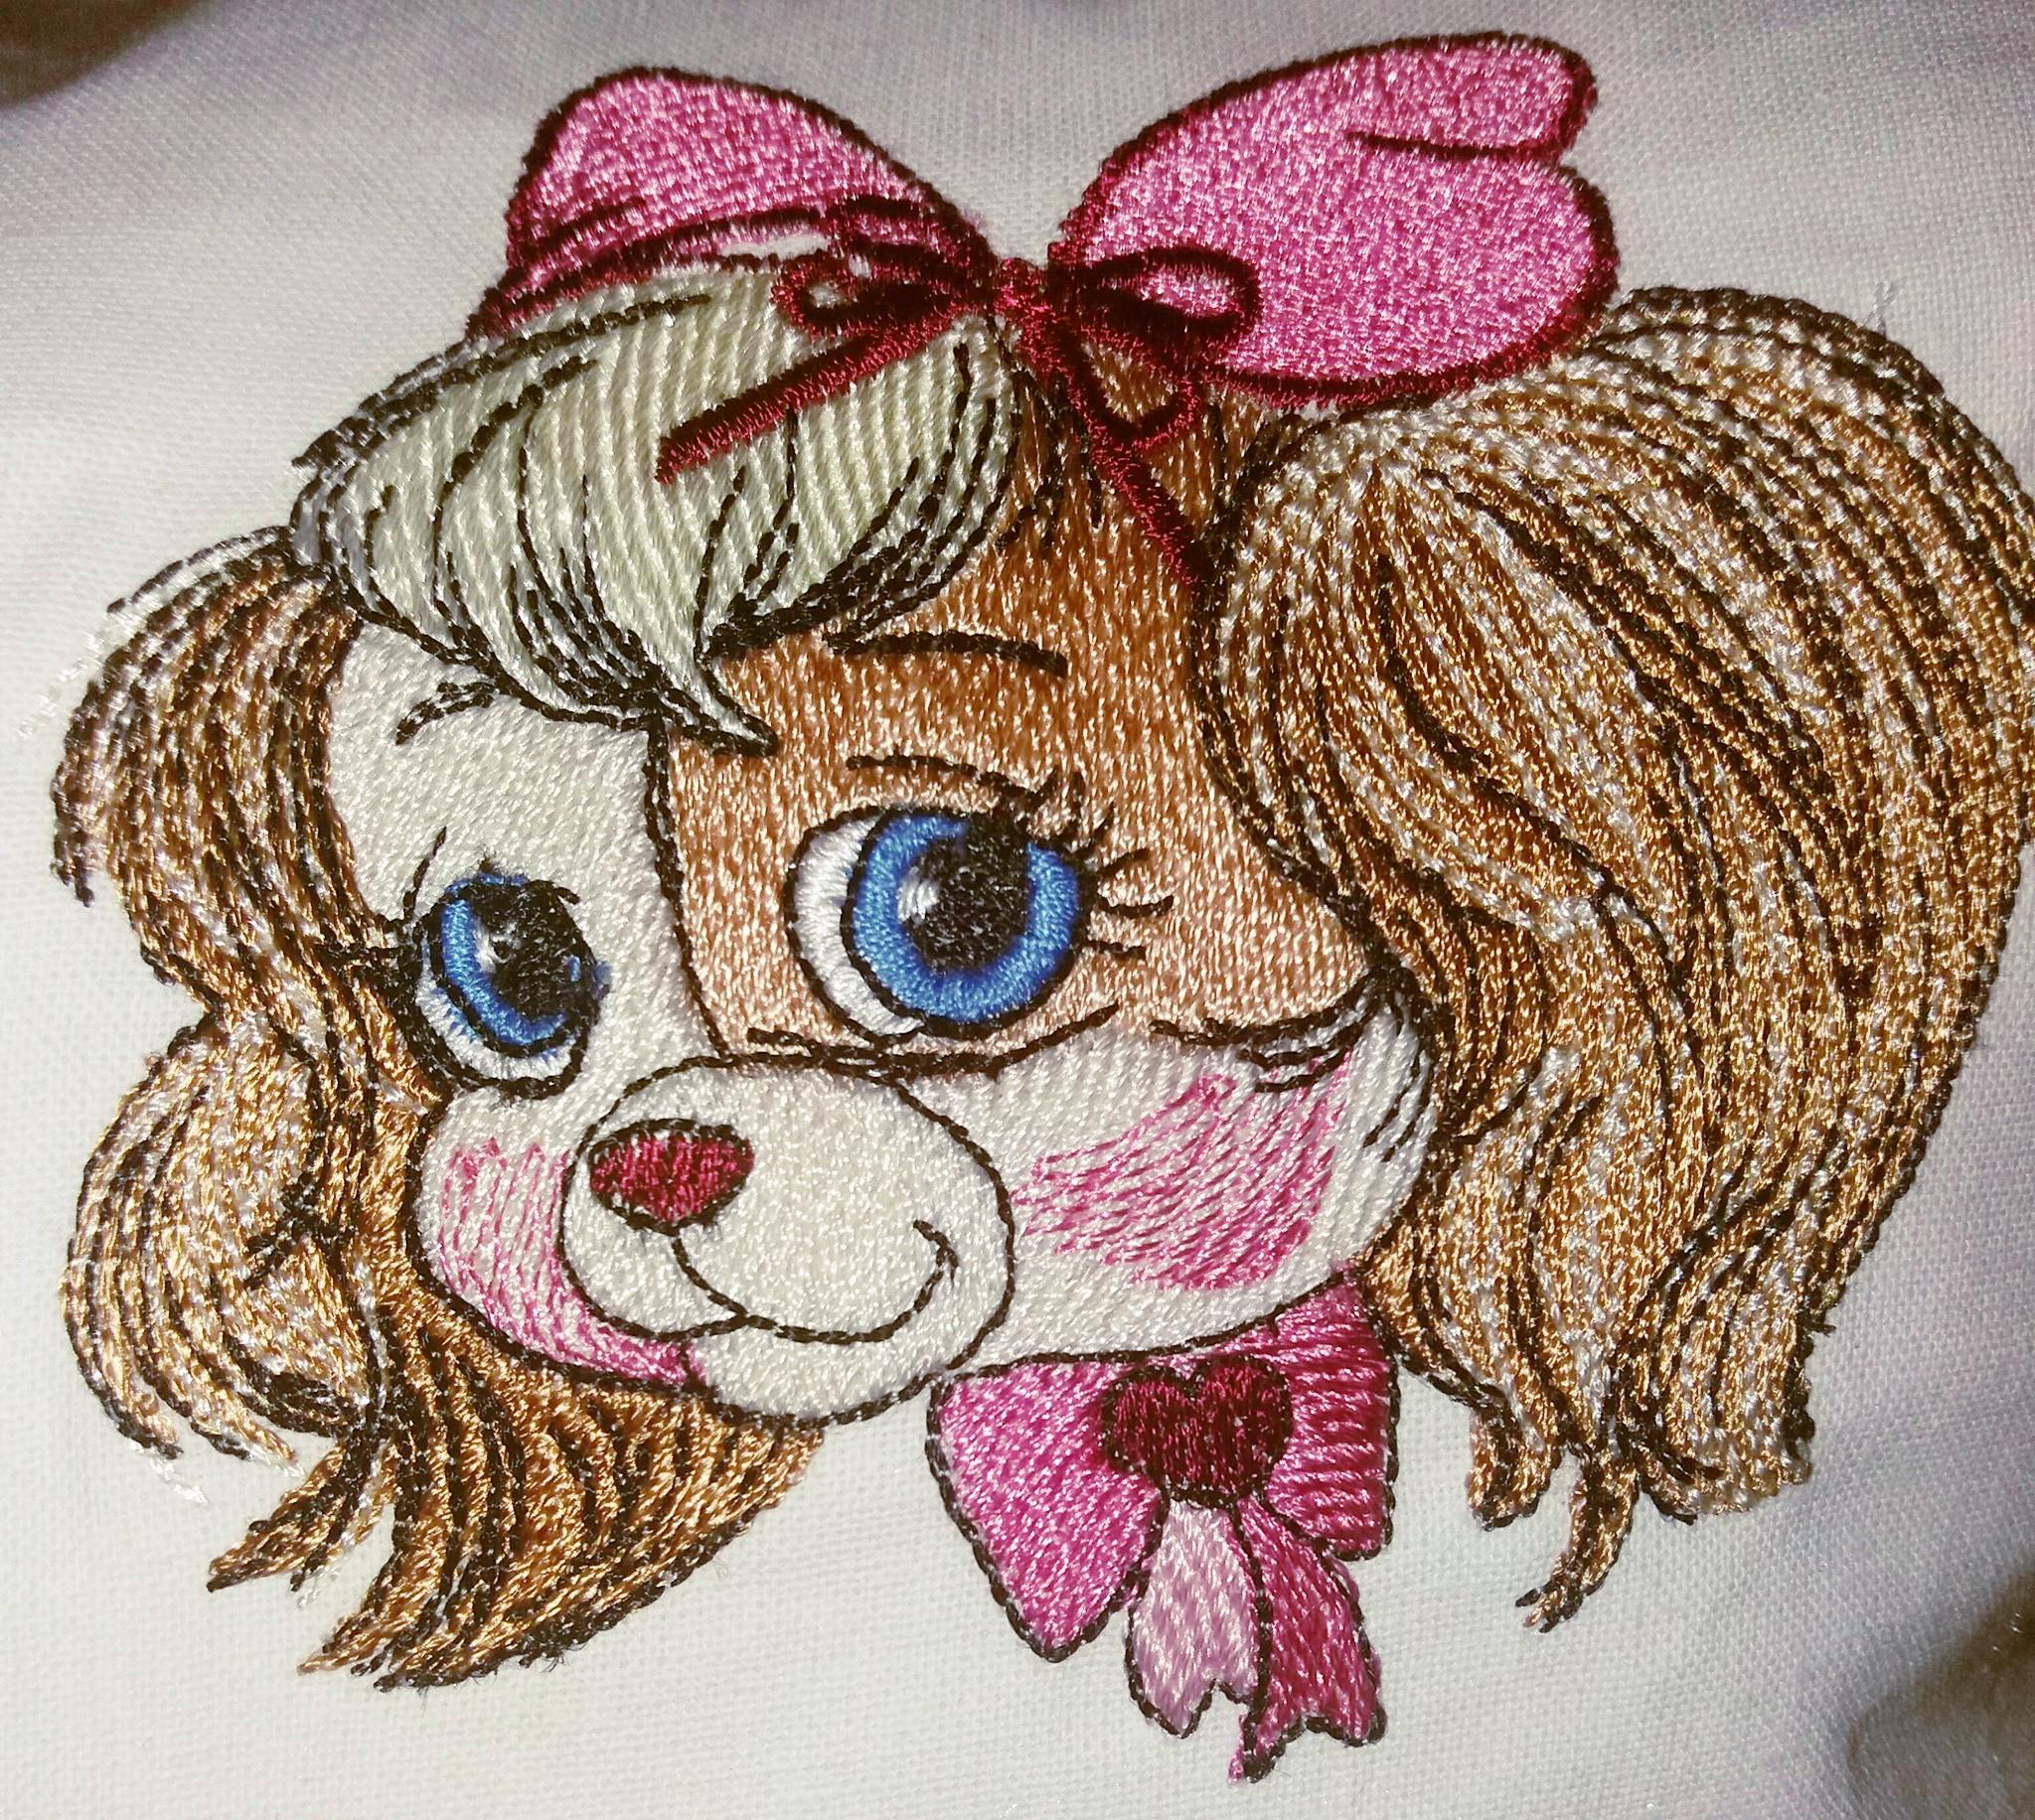 Portrait of cute dog embroidery design